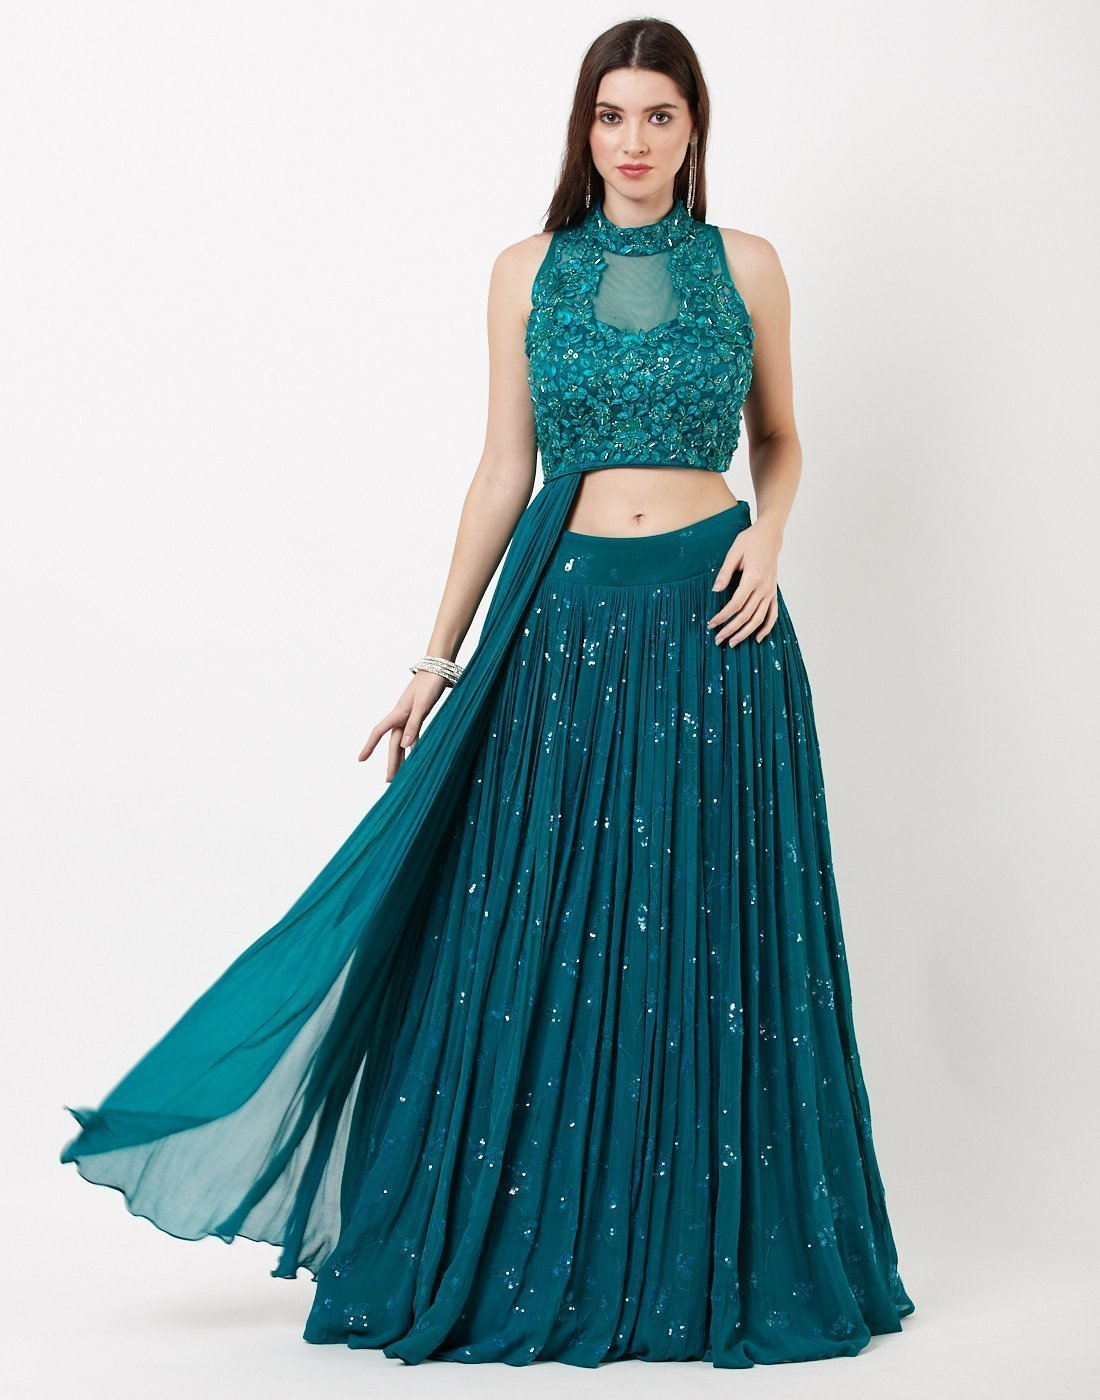 MBZ Meena Bazaar-Lake Blue Georgette Lehenga with Attached Dupatta